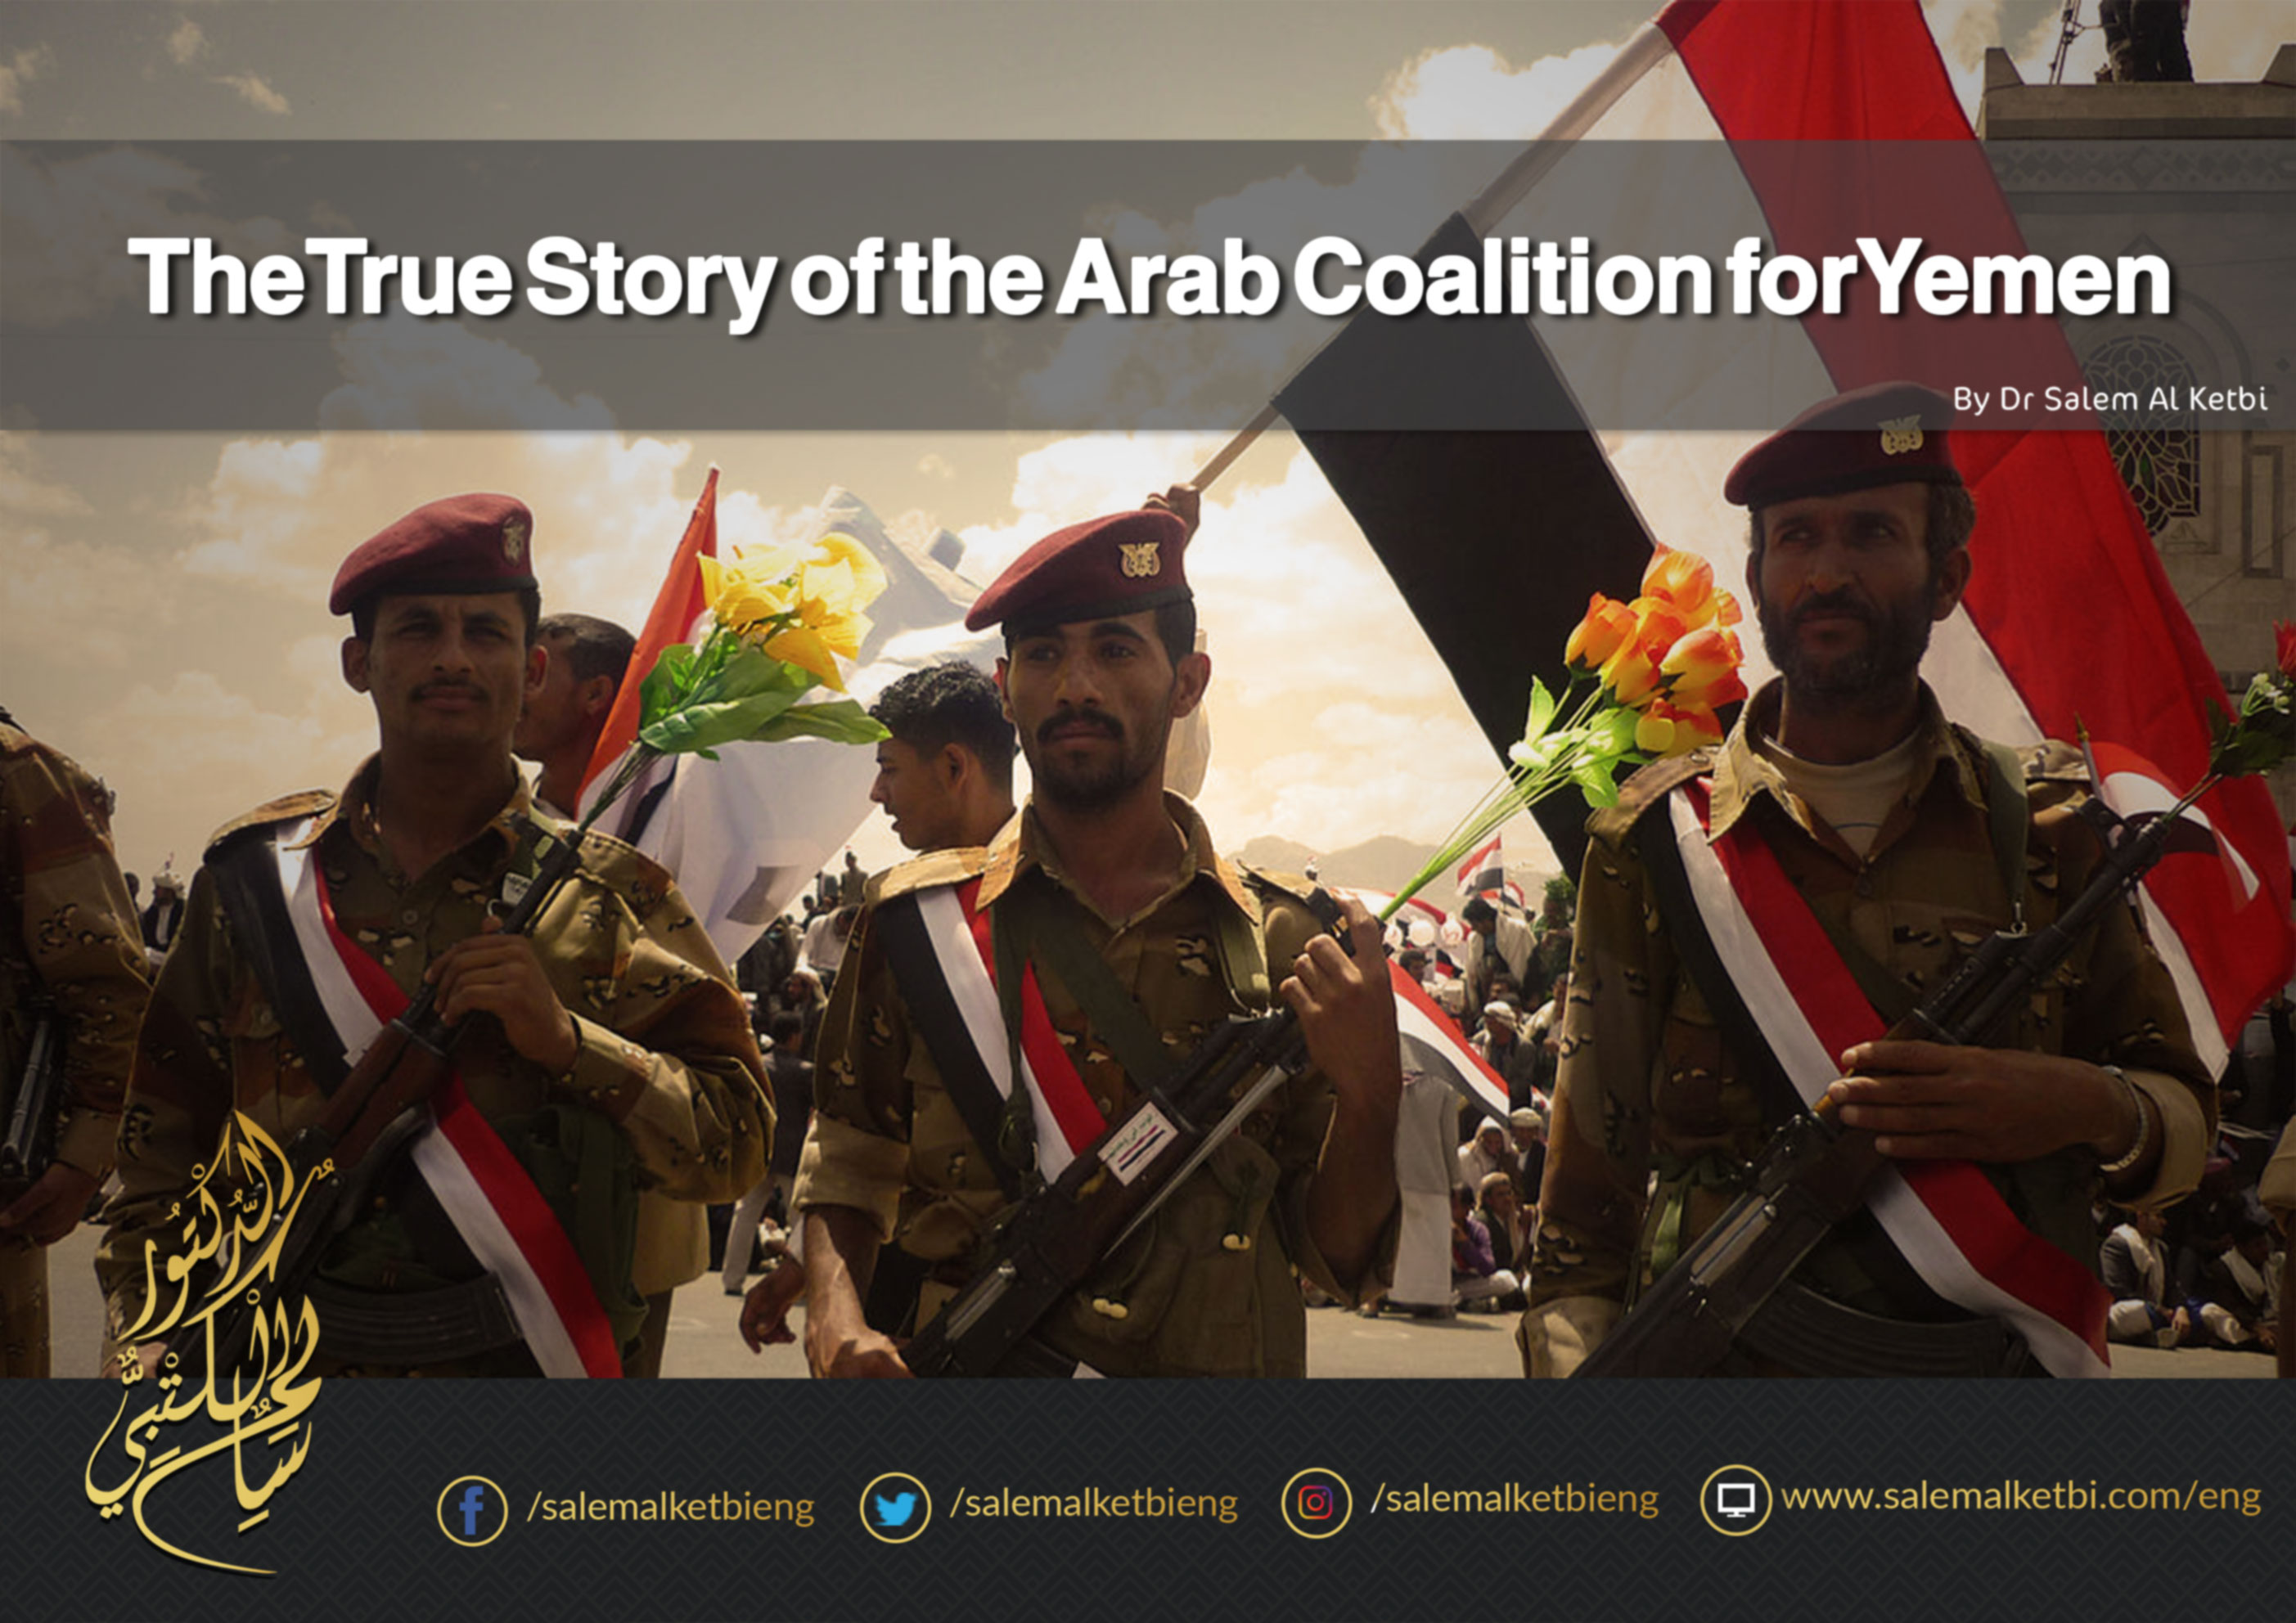 The True Story of the Arab Coalition for Yemen